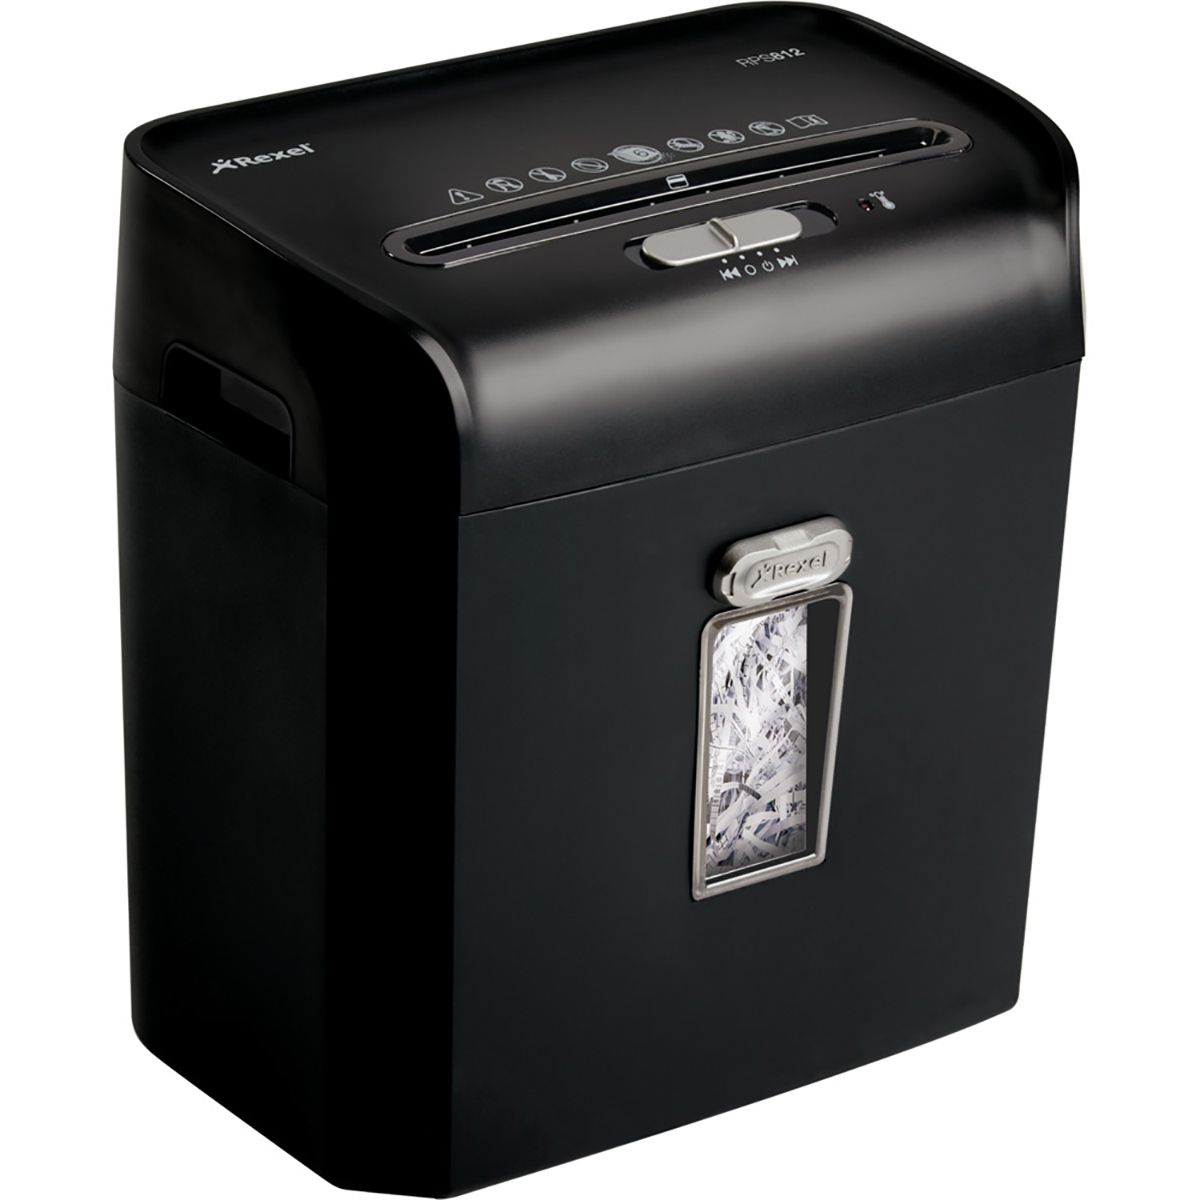 Rexel RPS812 Strip Cut Shredder